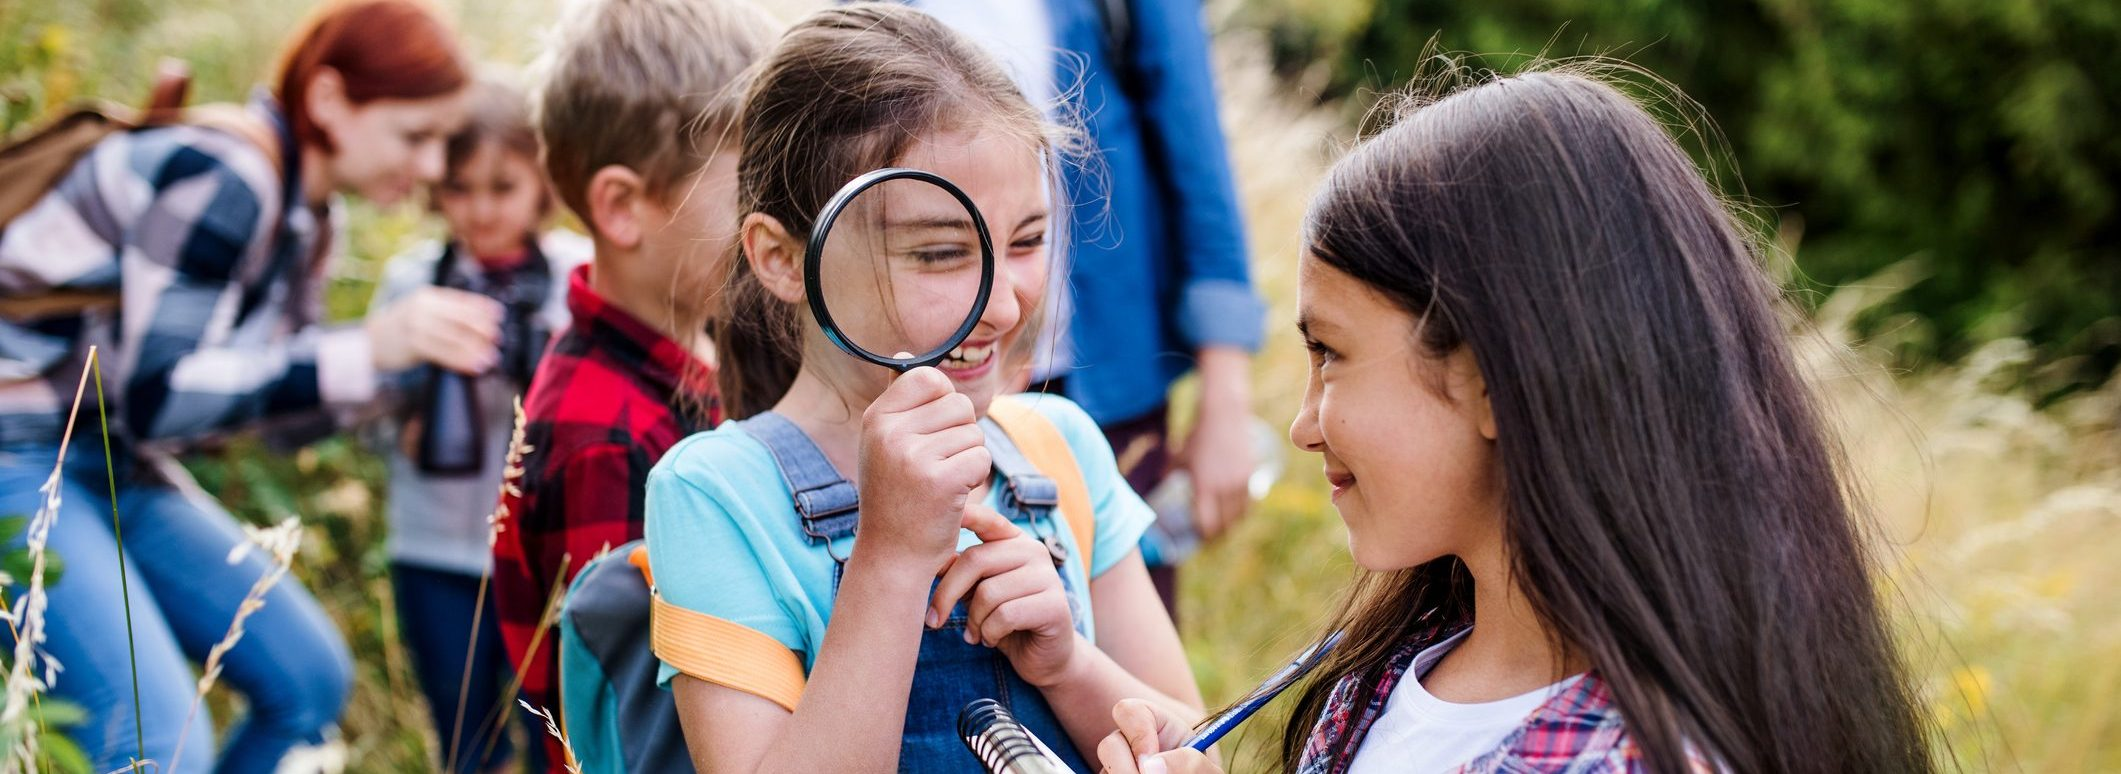 Girls outdoors exploring; one holding a magnifying glass and the other looking at the girl with a notepad